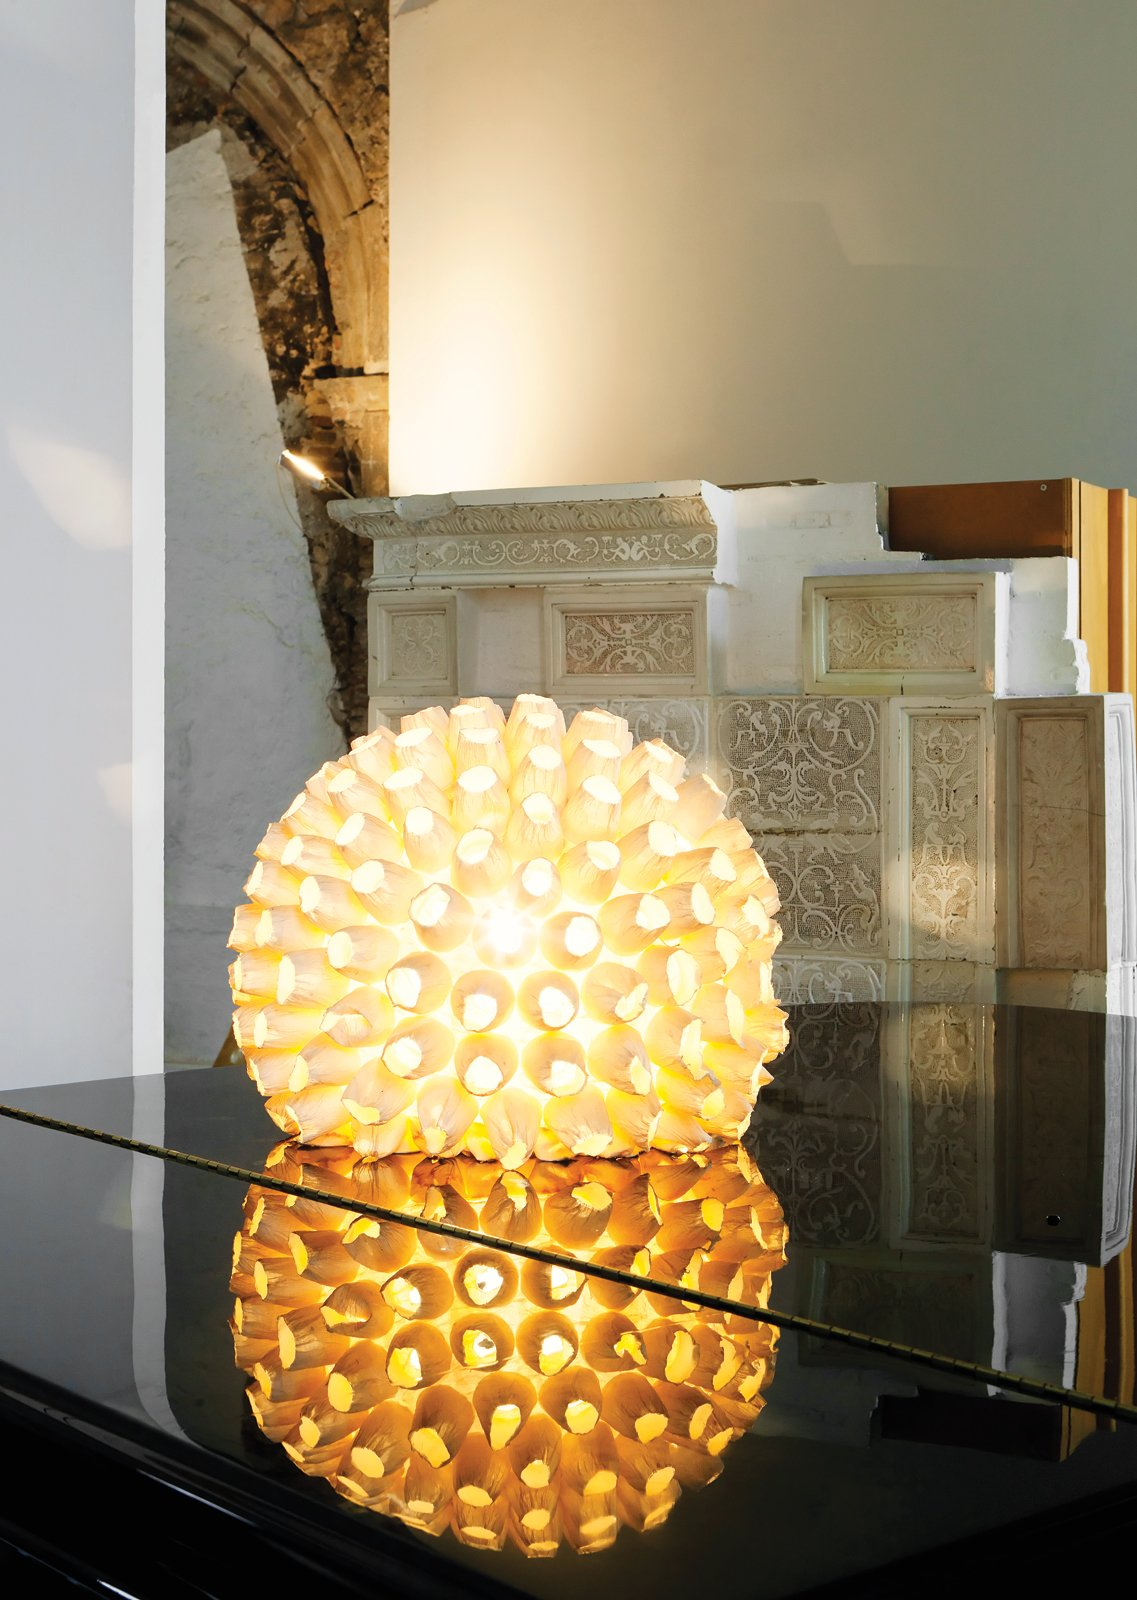 The glowing anemone-like lamp is from Vinçon in Barcelona. 60+ Modern Lighting Solutions by Dwell